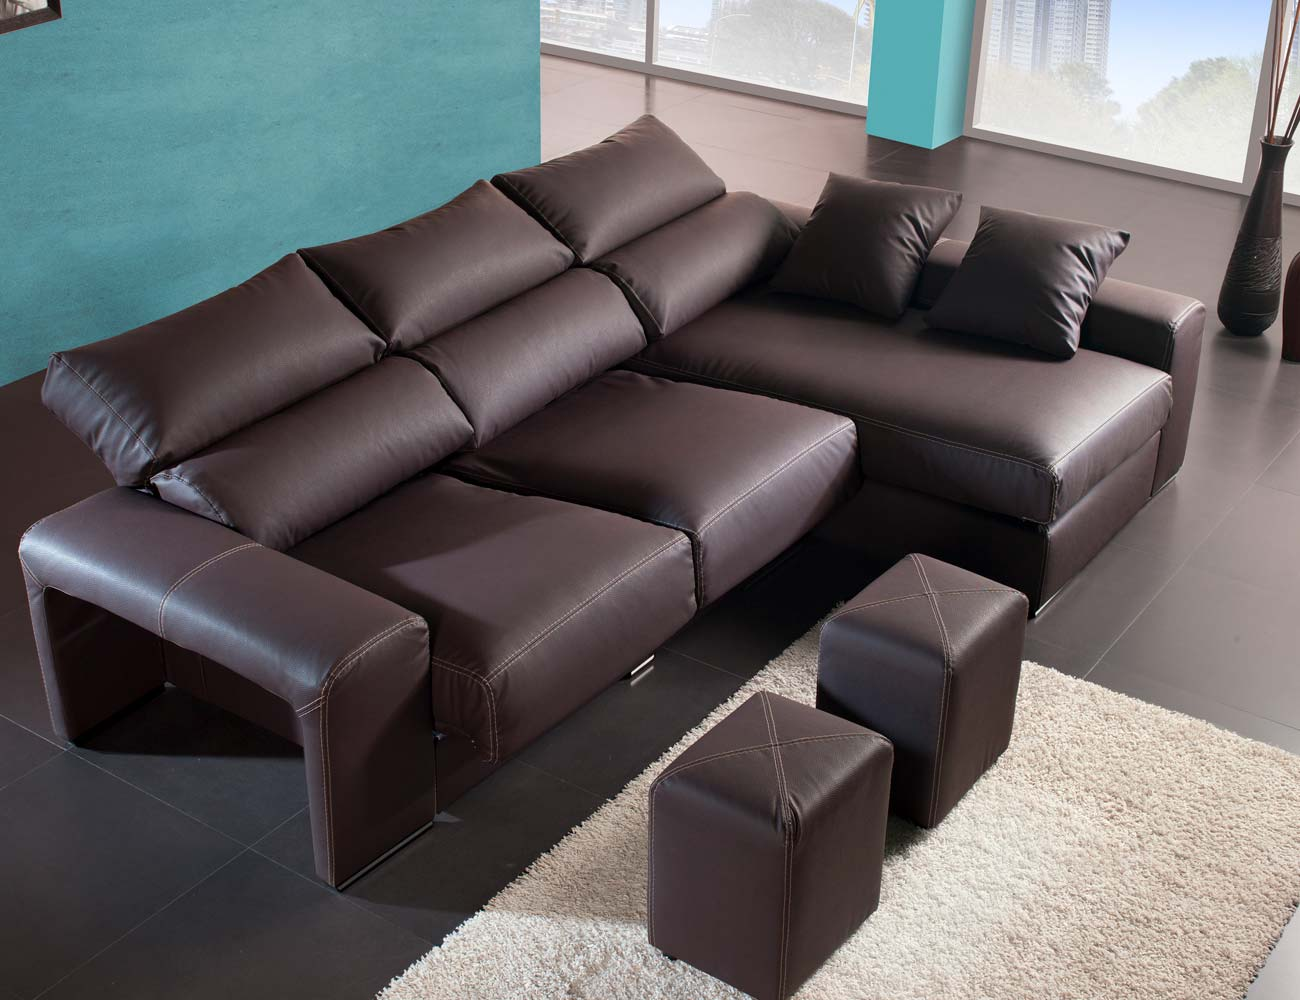 Sofa chaiselongue moderno polipiel chocolate poufs taburetes63